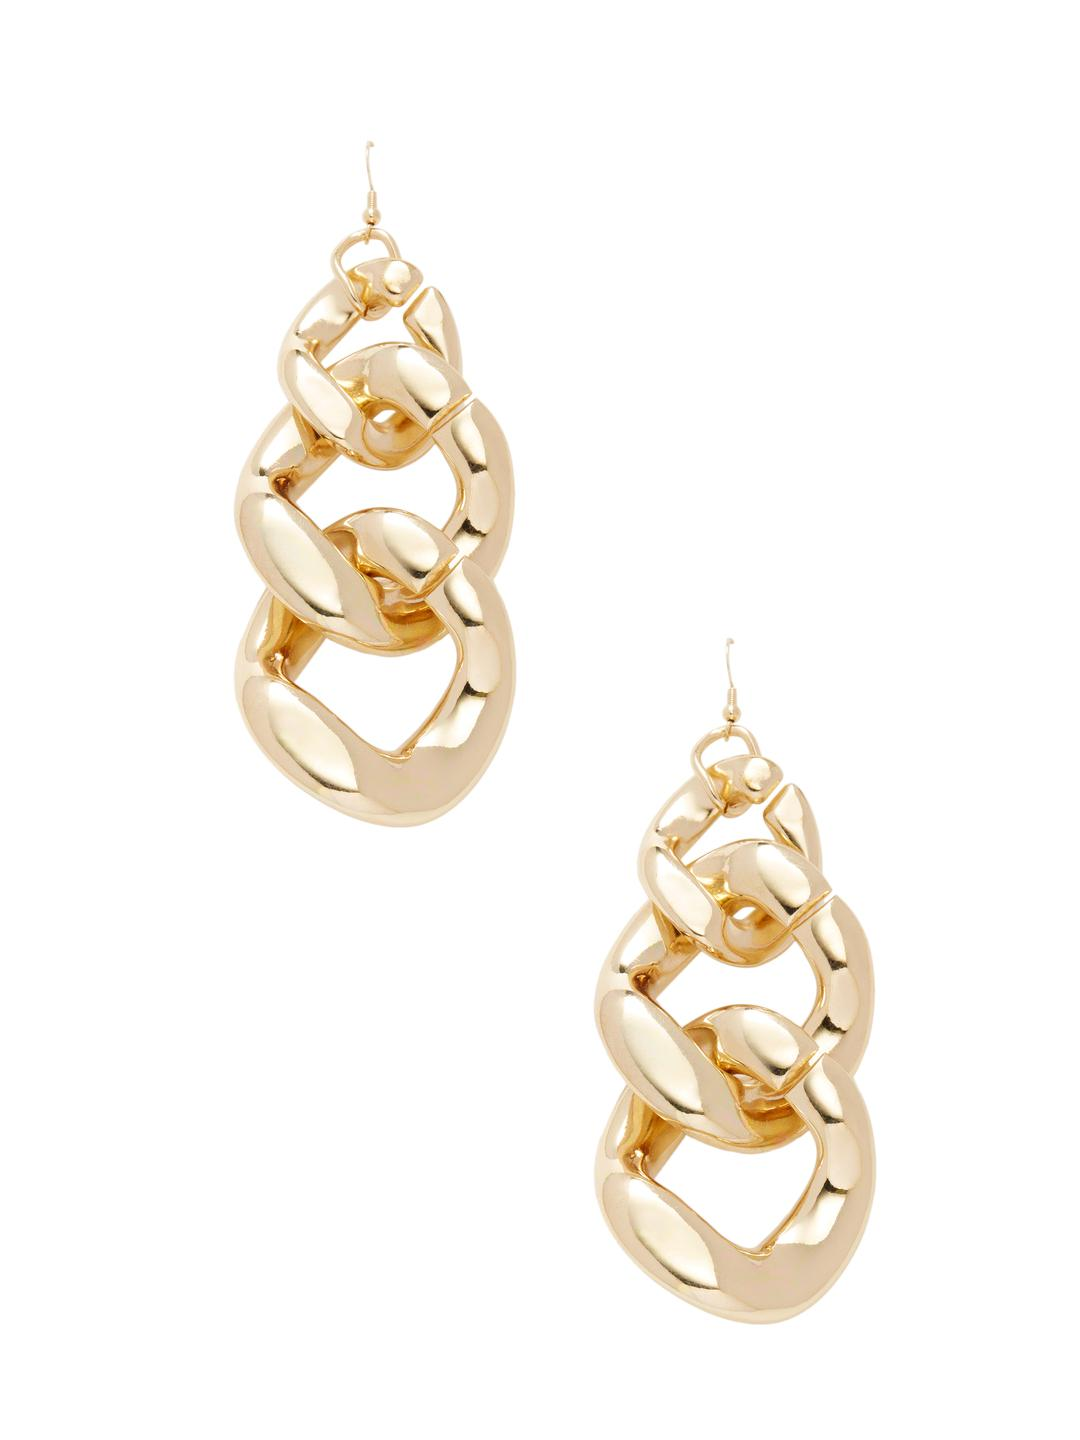 Kenneth Jay Lane Polished Gold Fish Hook Earrings Polished gold pNlan